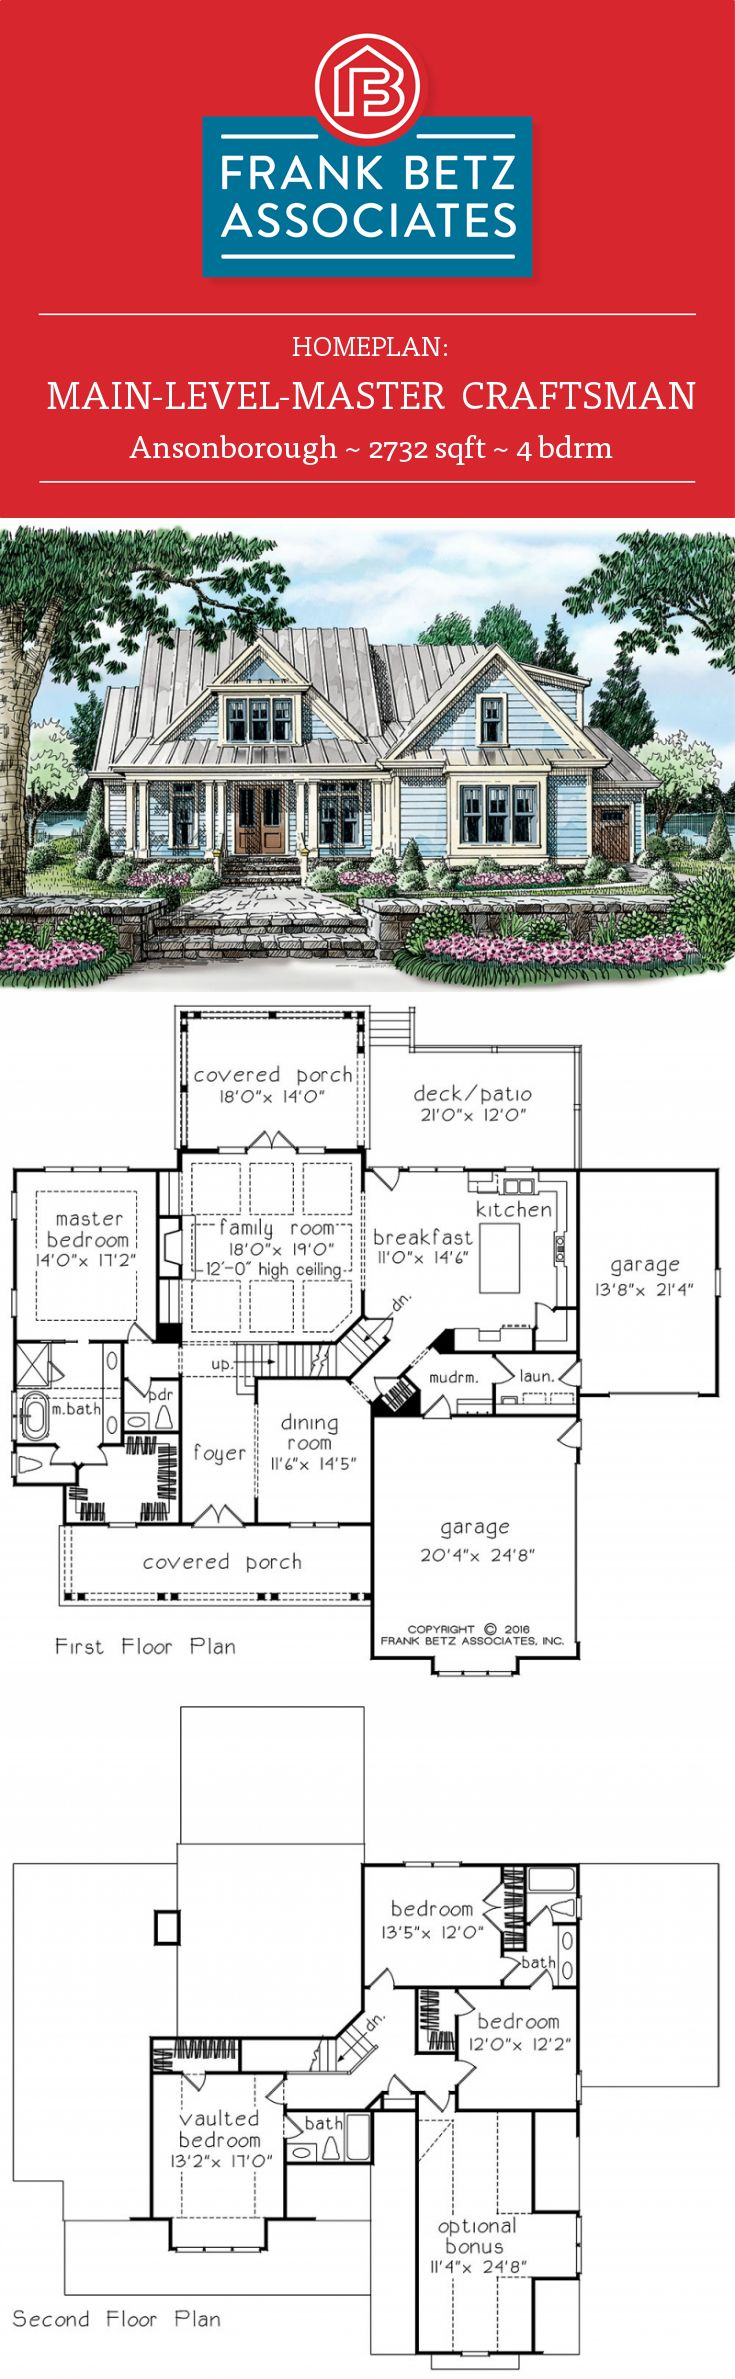 Ansonborough: 2732 Sqft, 4 Bdrm, Main Level Master Craftsman, Southern  Living House Plan Design By Frank Betz Associates Inc. Love The Mud Room  Laundry ...